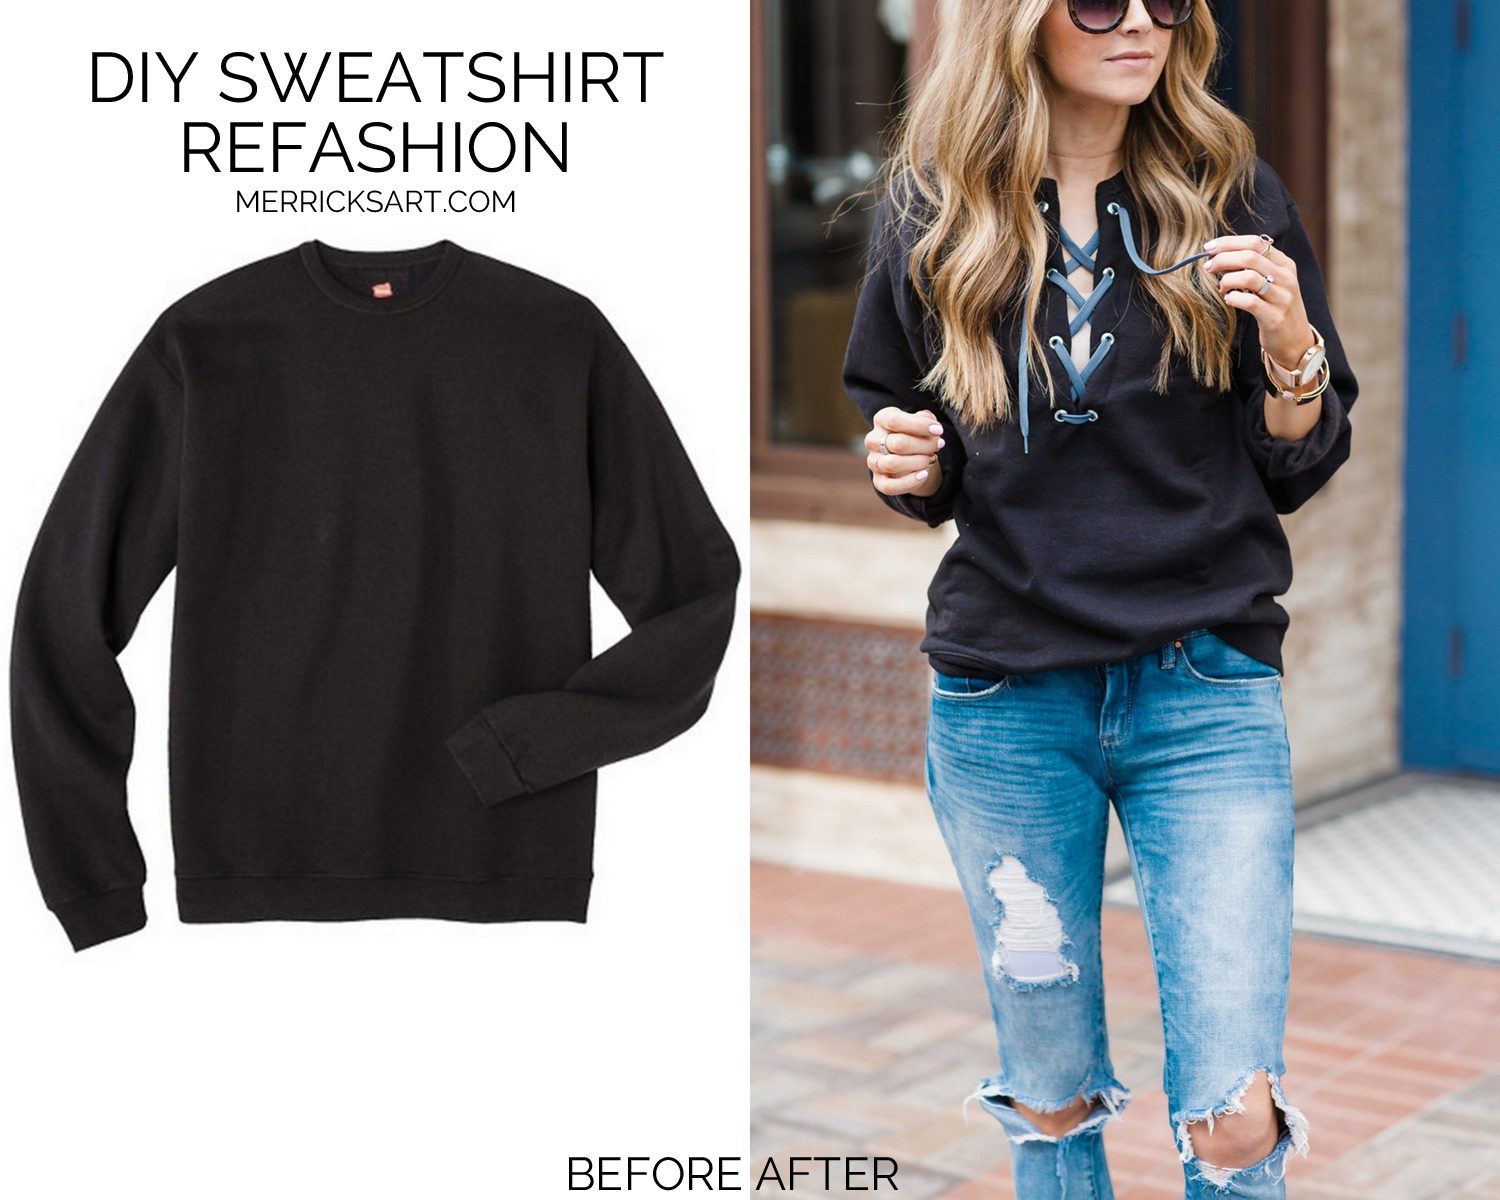 Before and After Sweatshirt Refashion